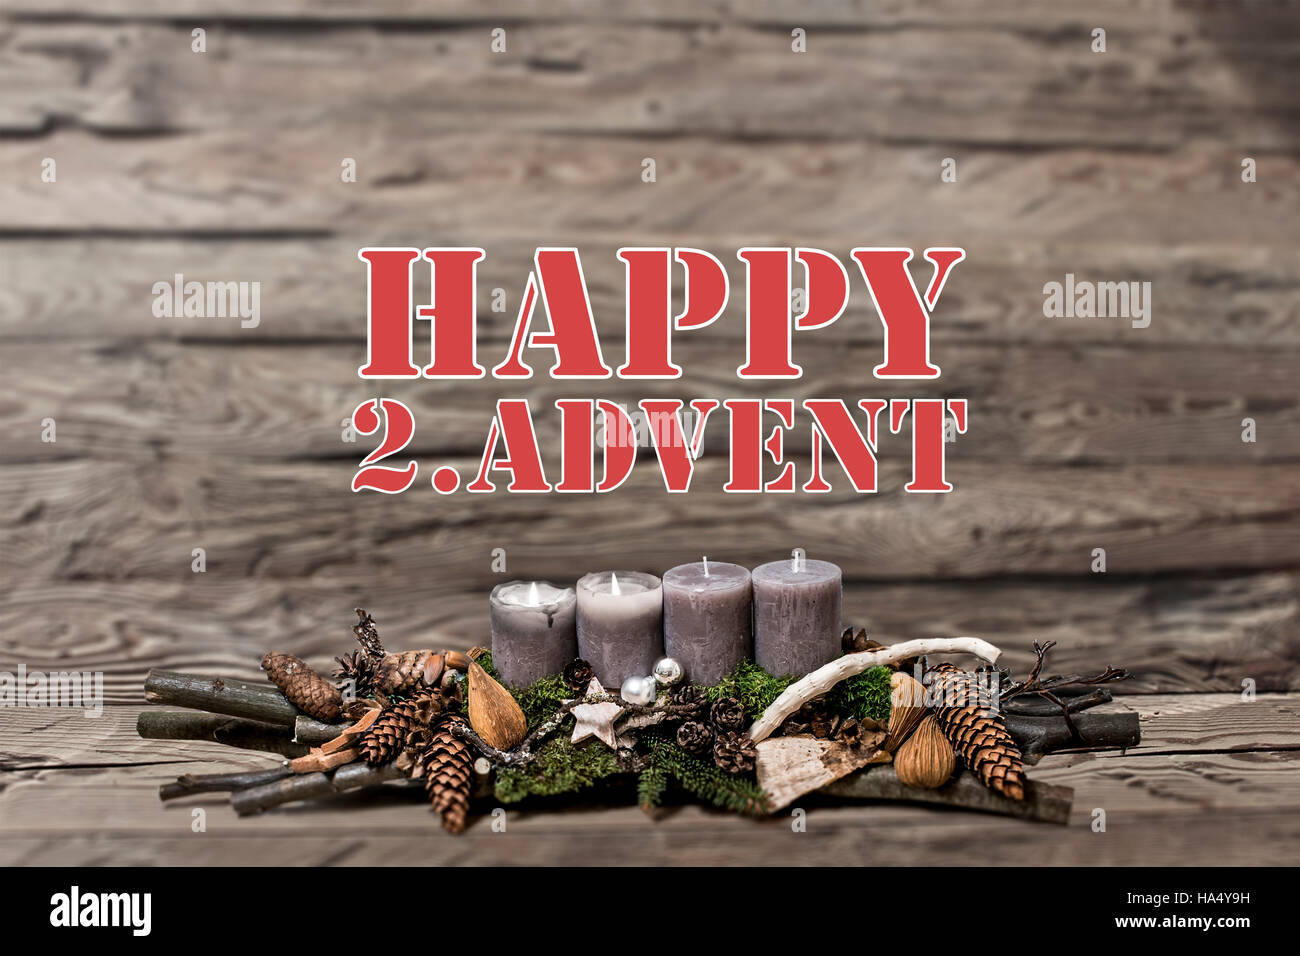 Merry Christmas decoration advent with burning grey candle Blurred background text message englisch 2nd - Stock Image